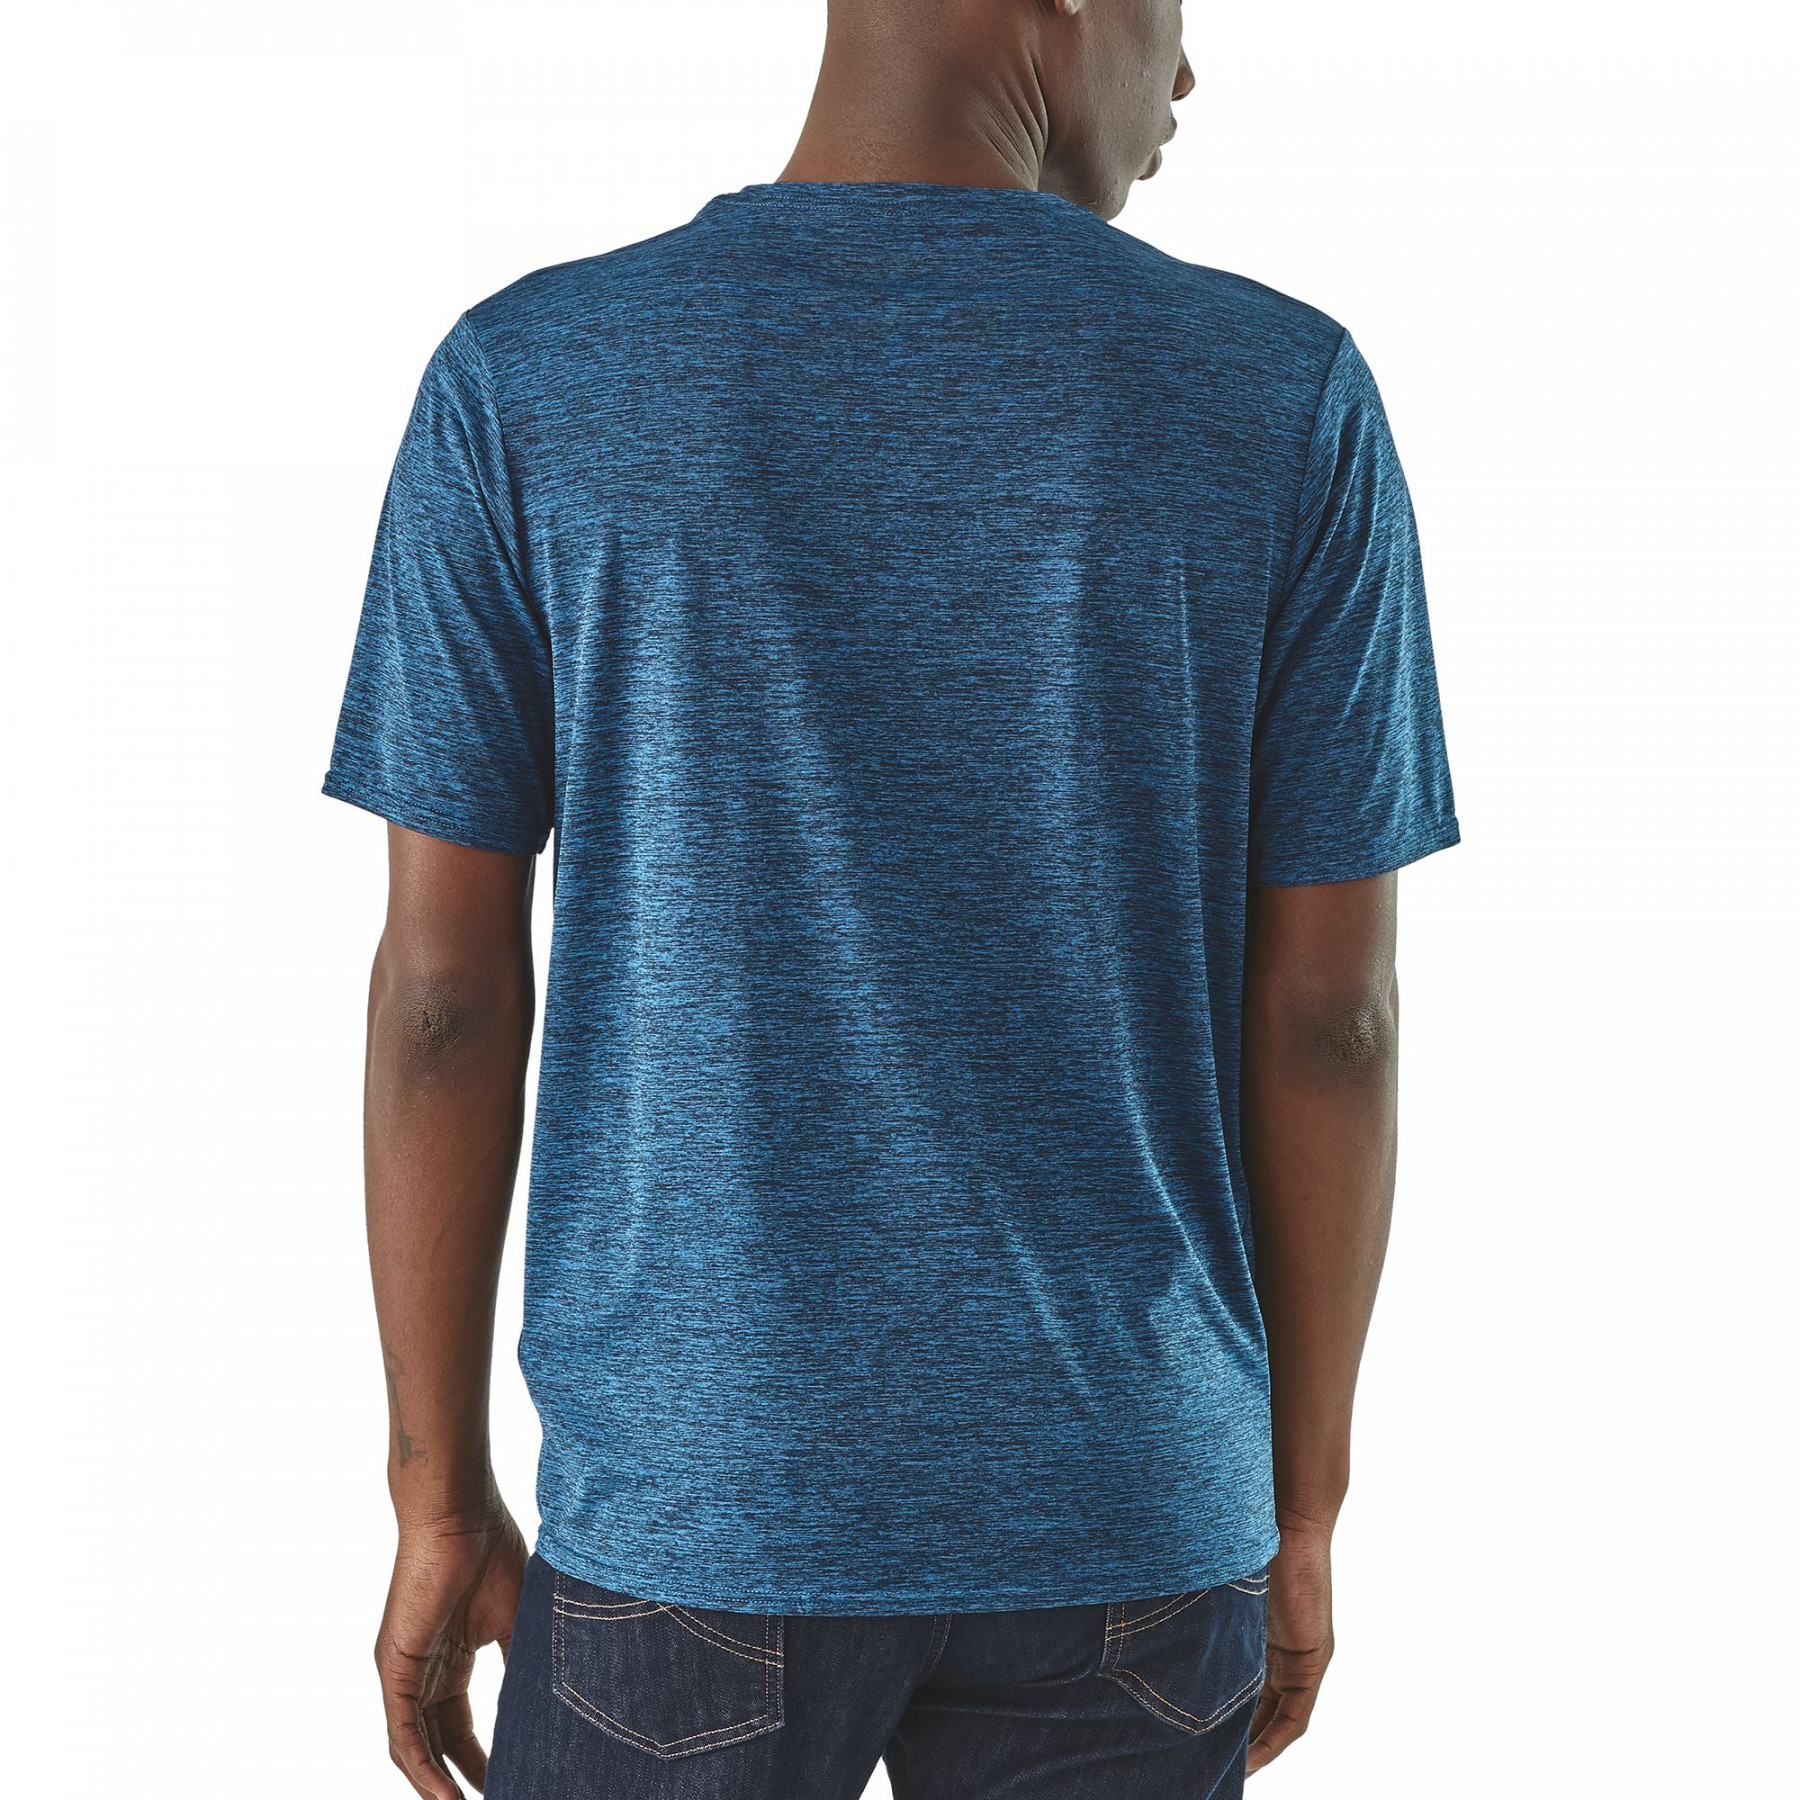 T-shirt Men's Capilene Cool Daily Shirt Bleu 2